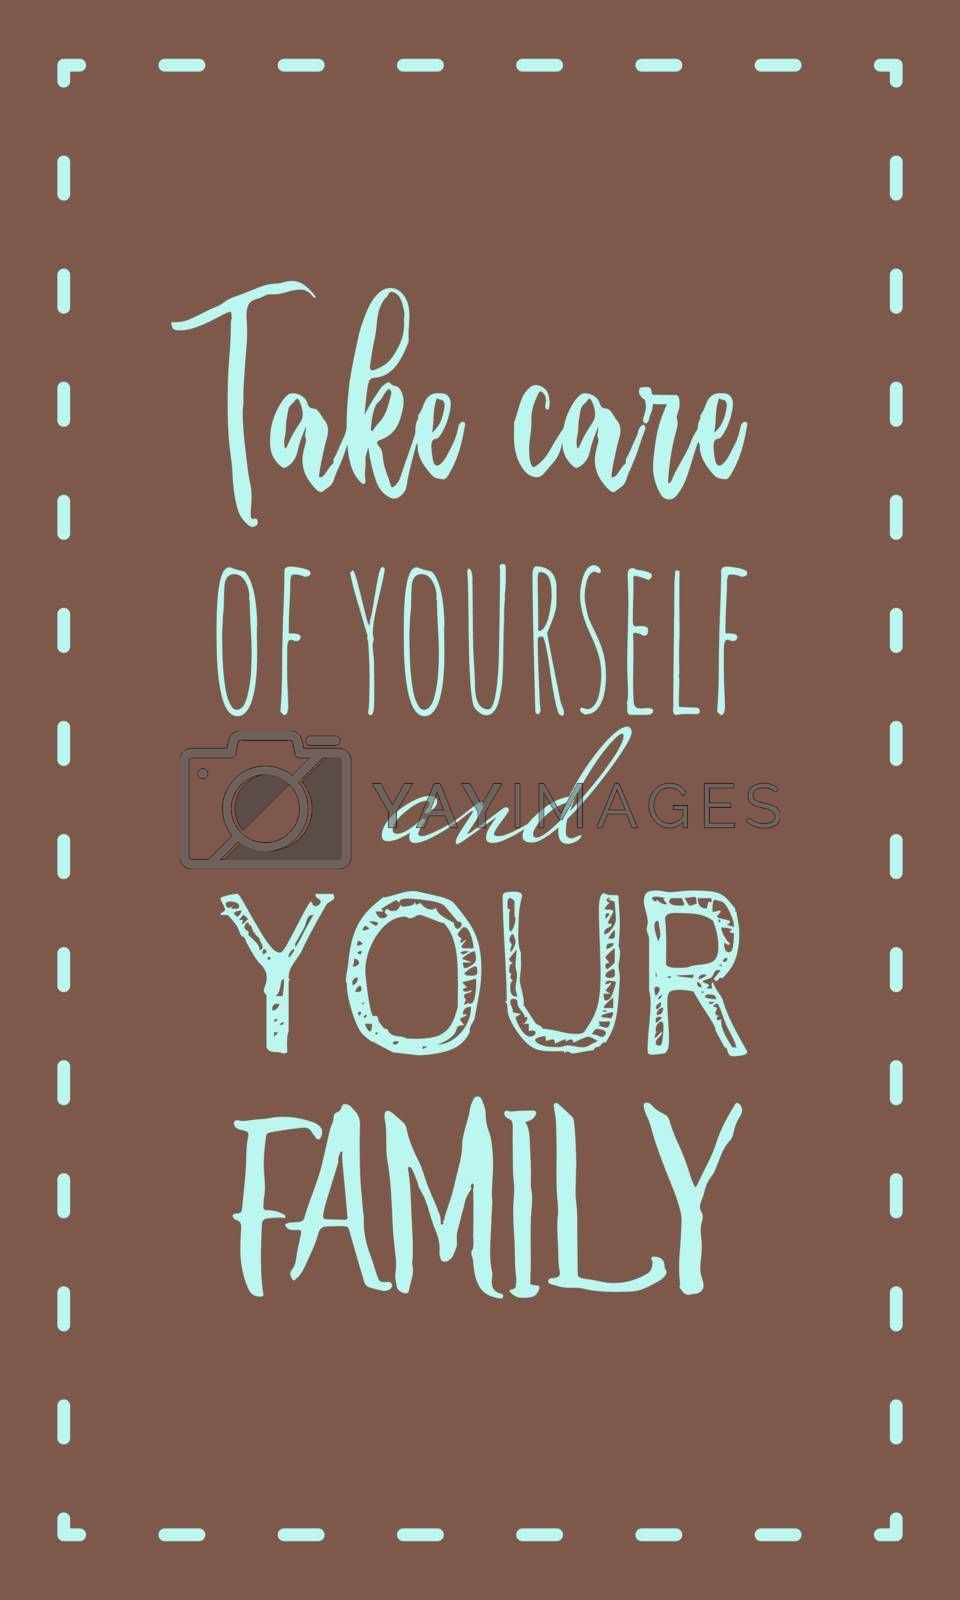 Cute lettering with text 'take care of yourself and your family' in dotted frame